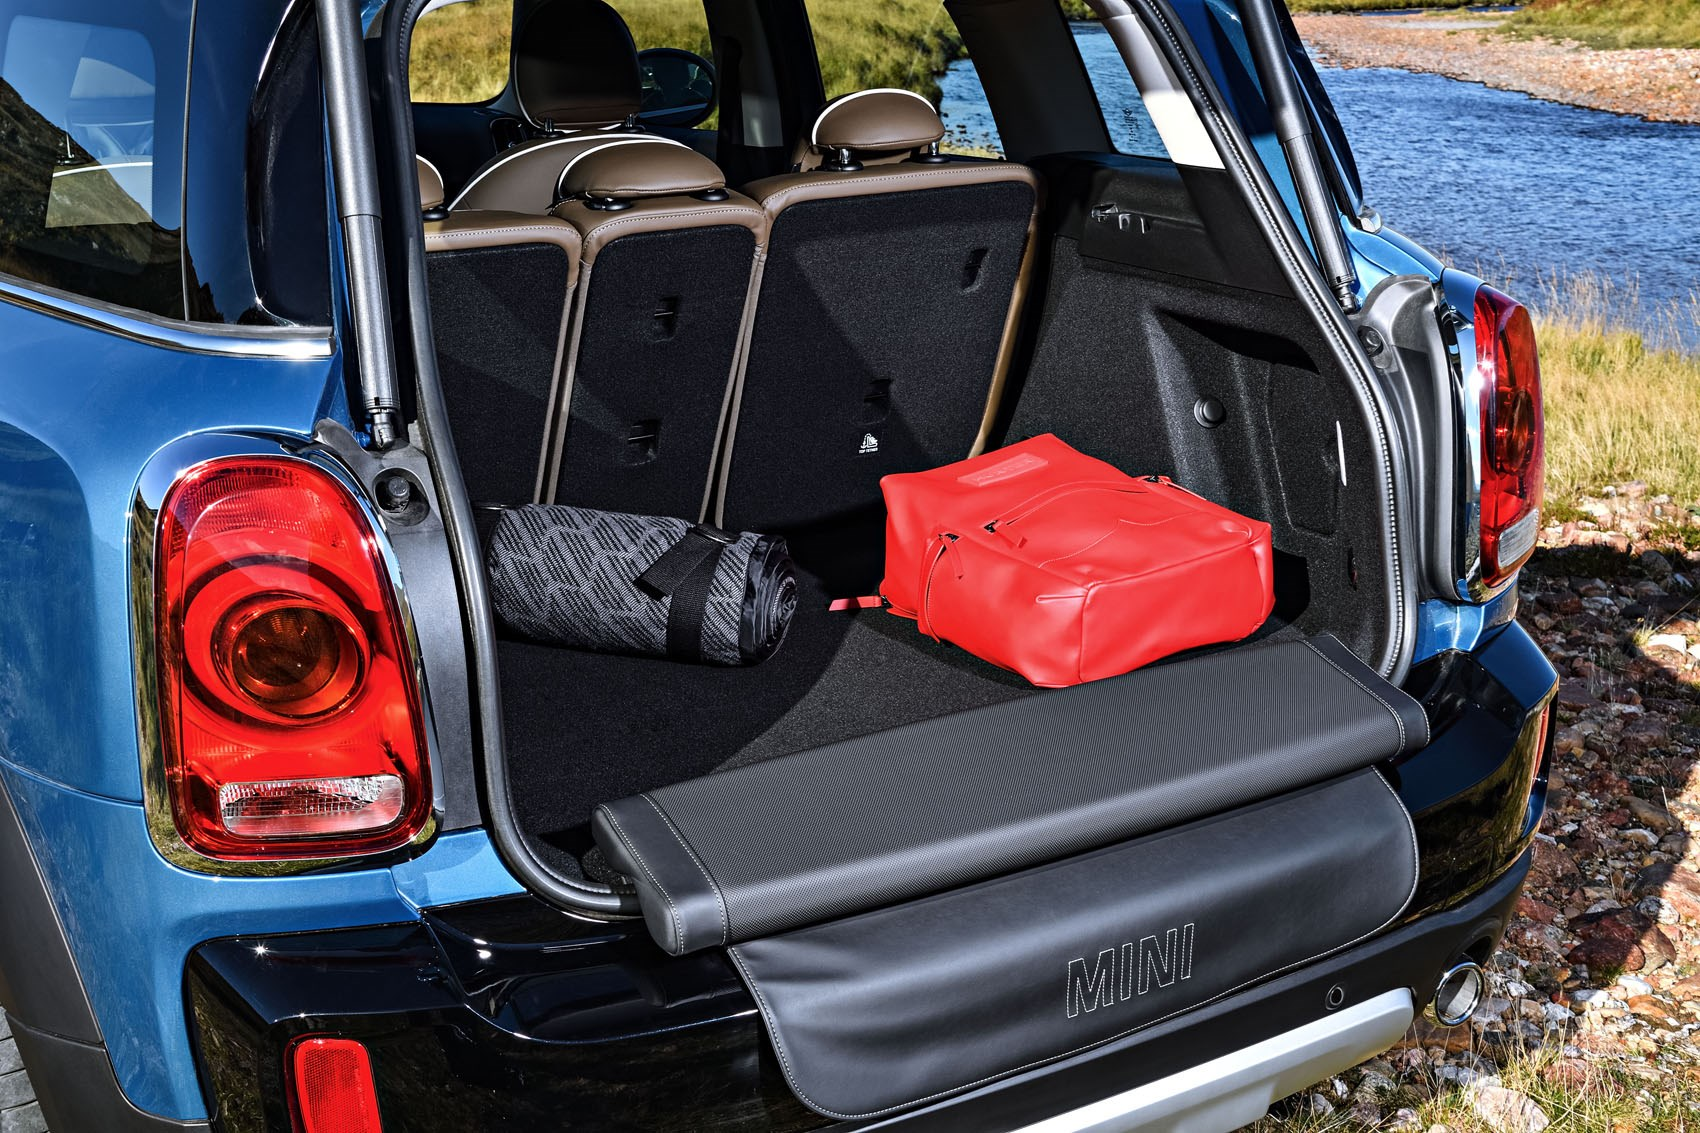 mini countryman review features safety and practicality parkers. Black Bedroom Furniture Sets. Home Design Ideas